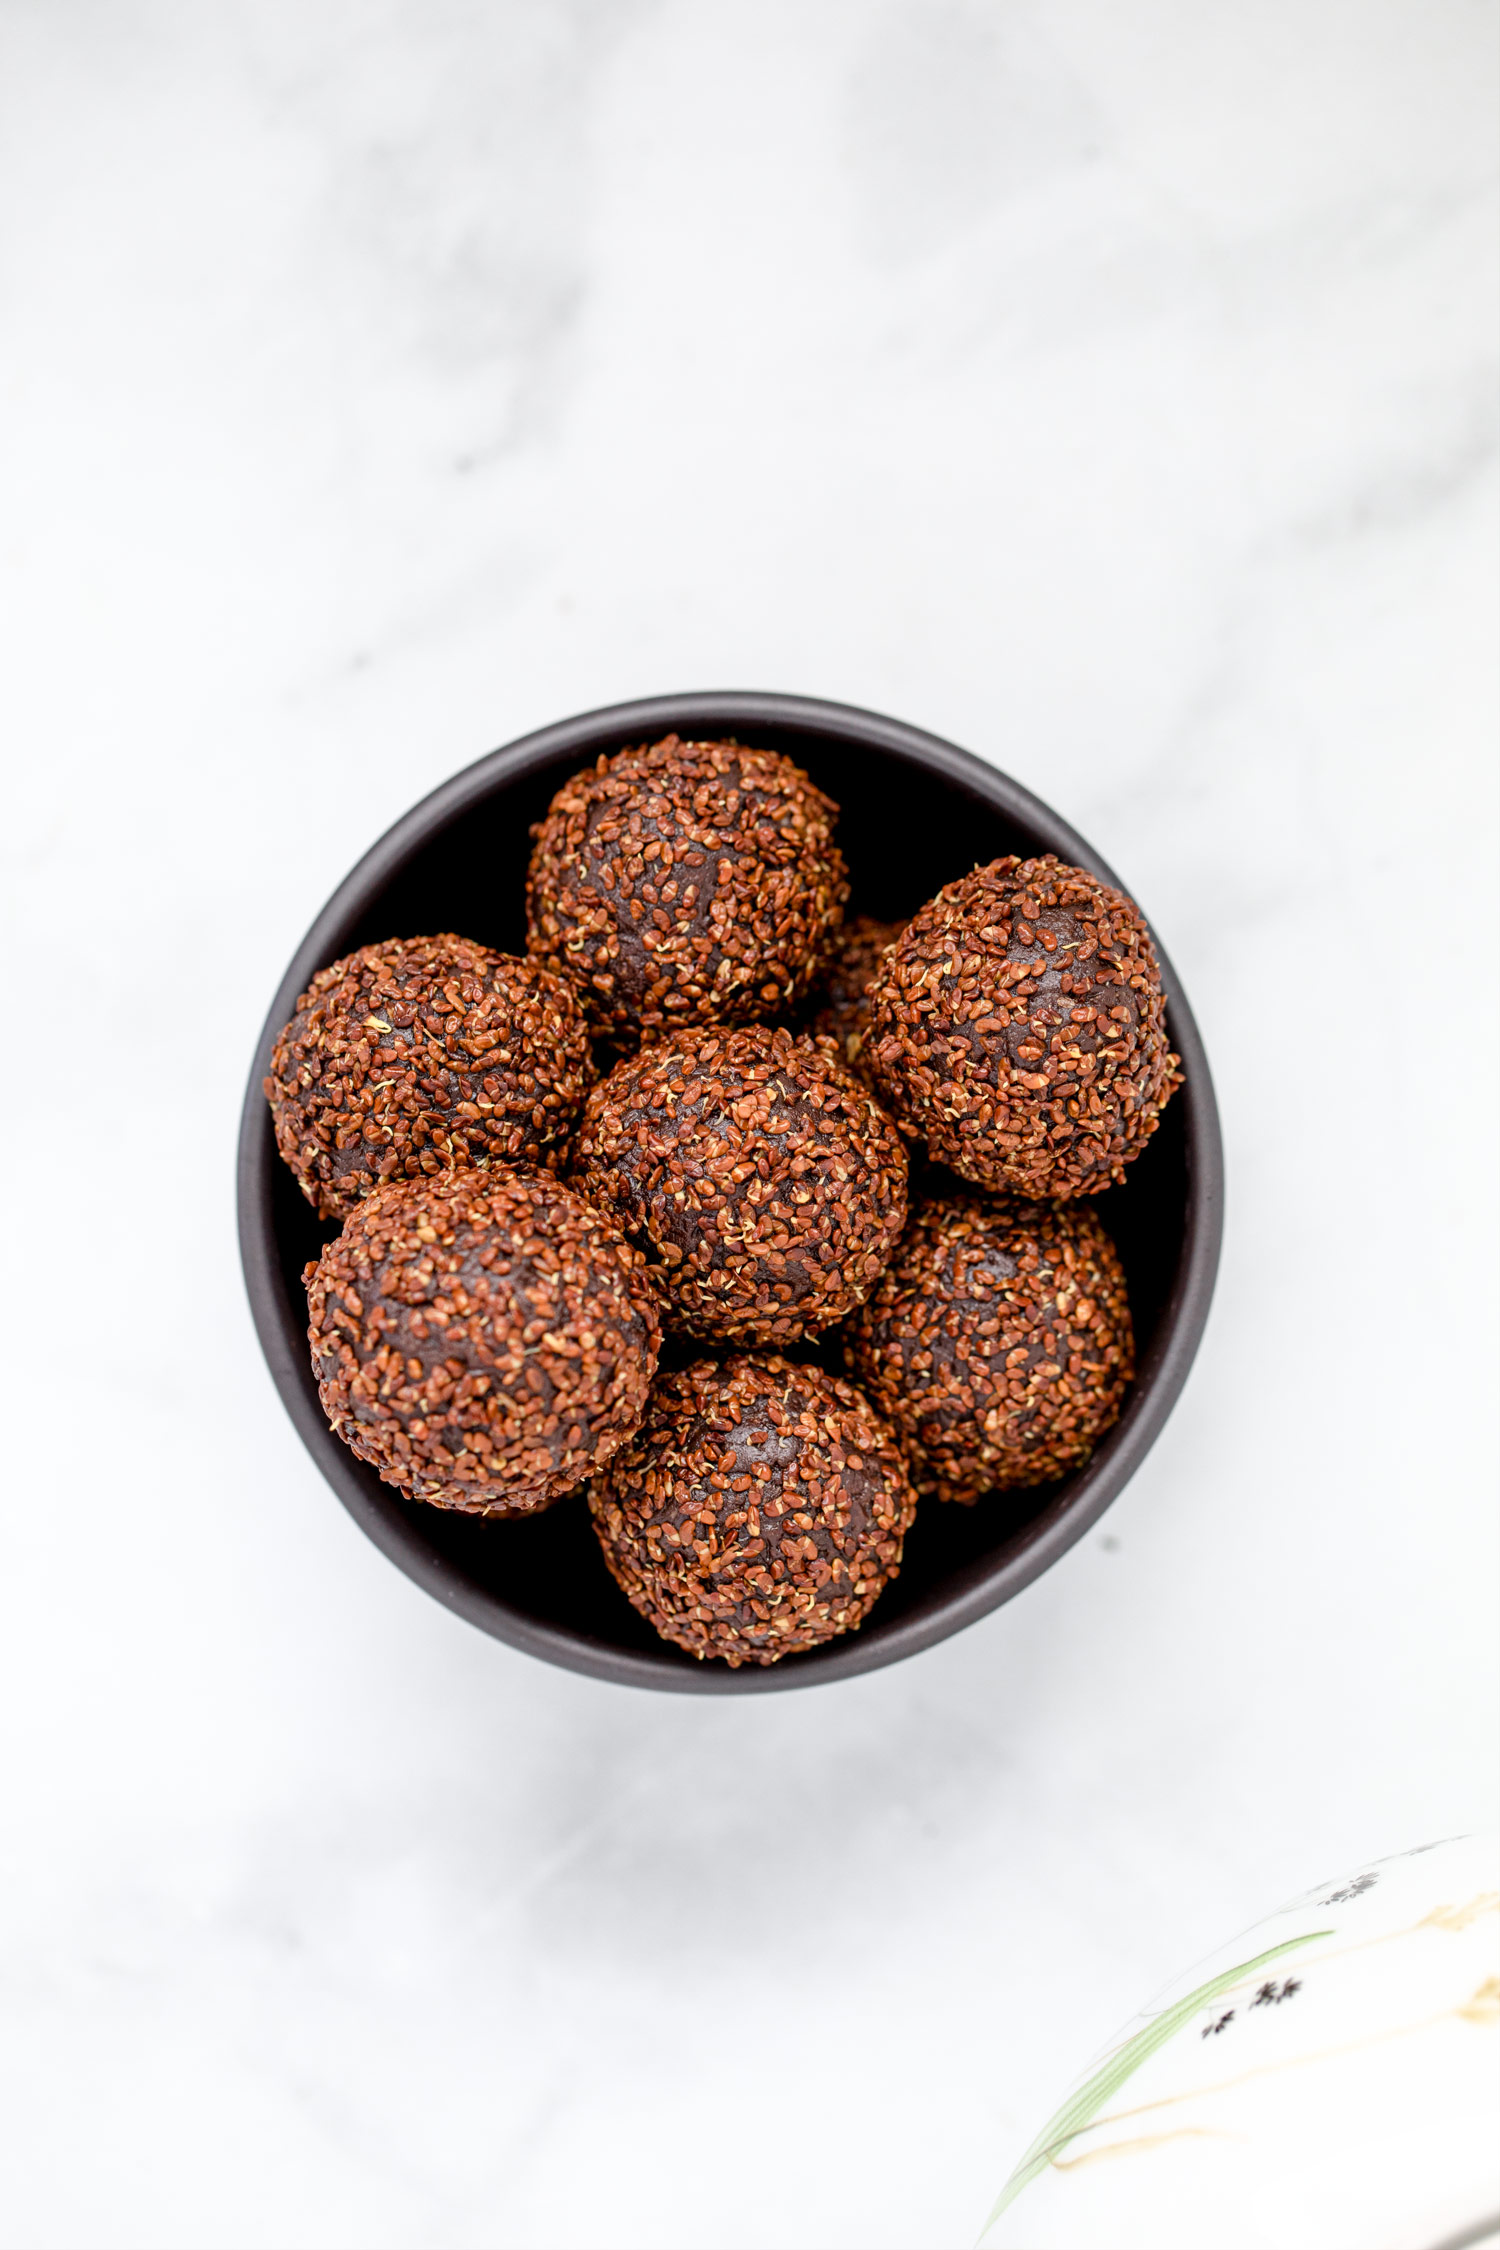 The Most Delicious 4 Ingredient Energy Balls With A Sprouted Crunch Coating